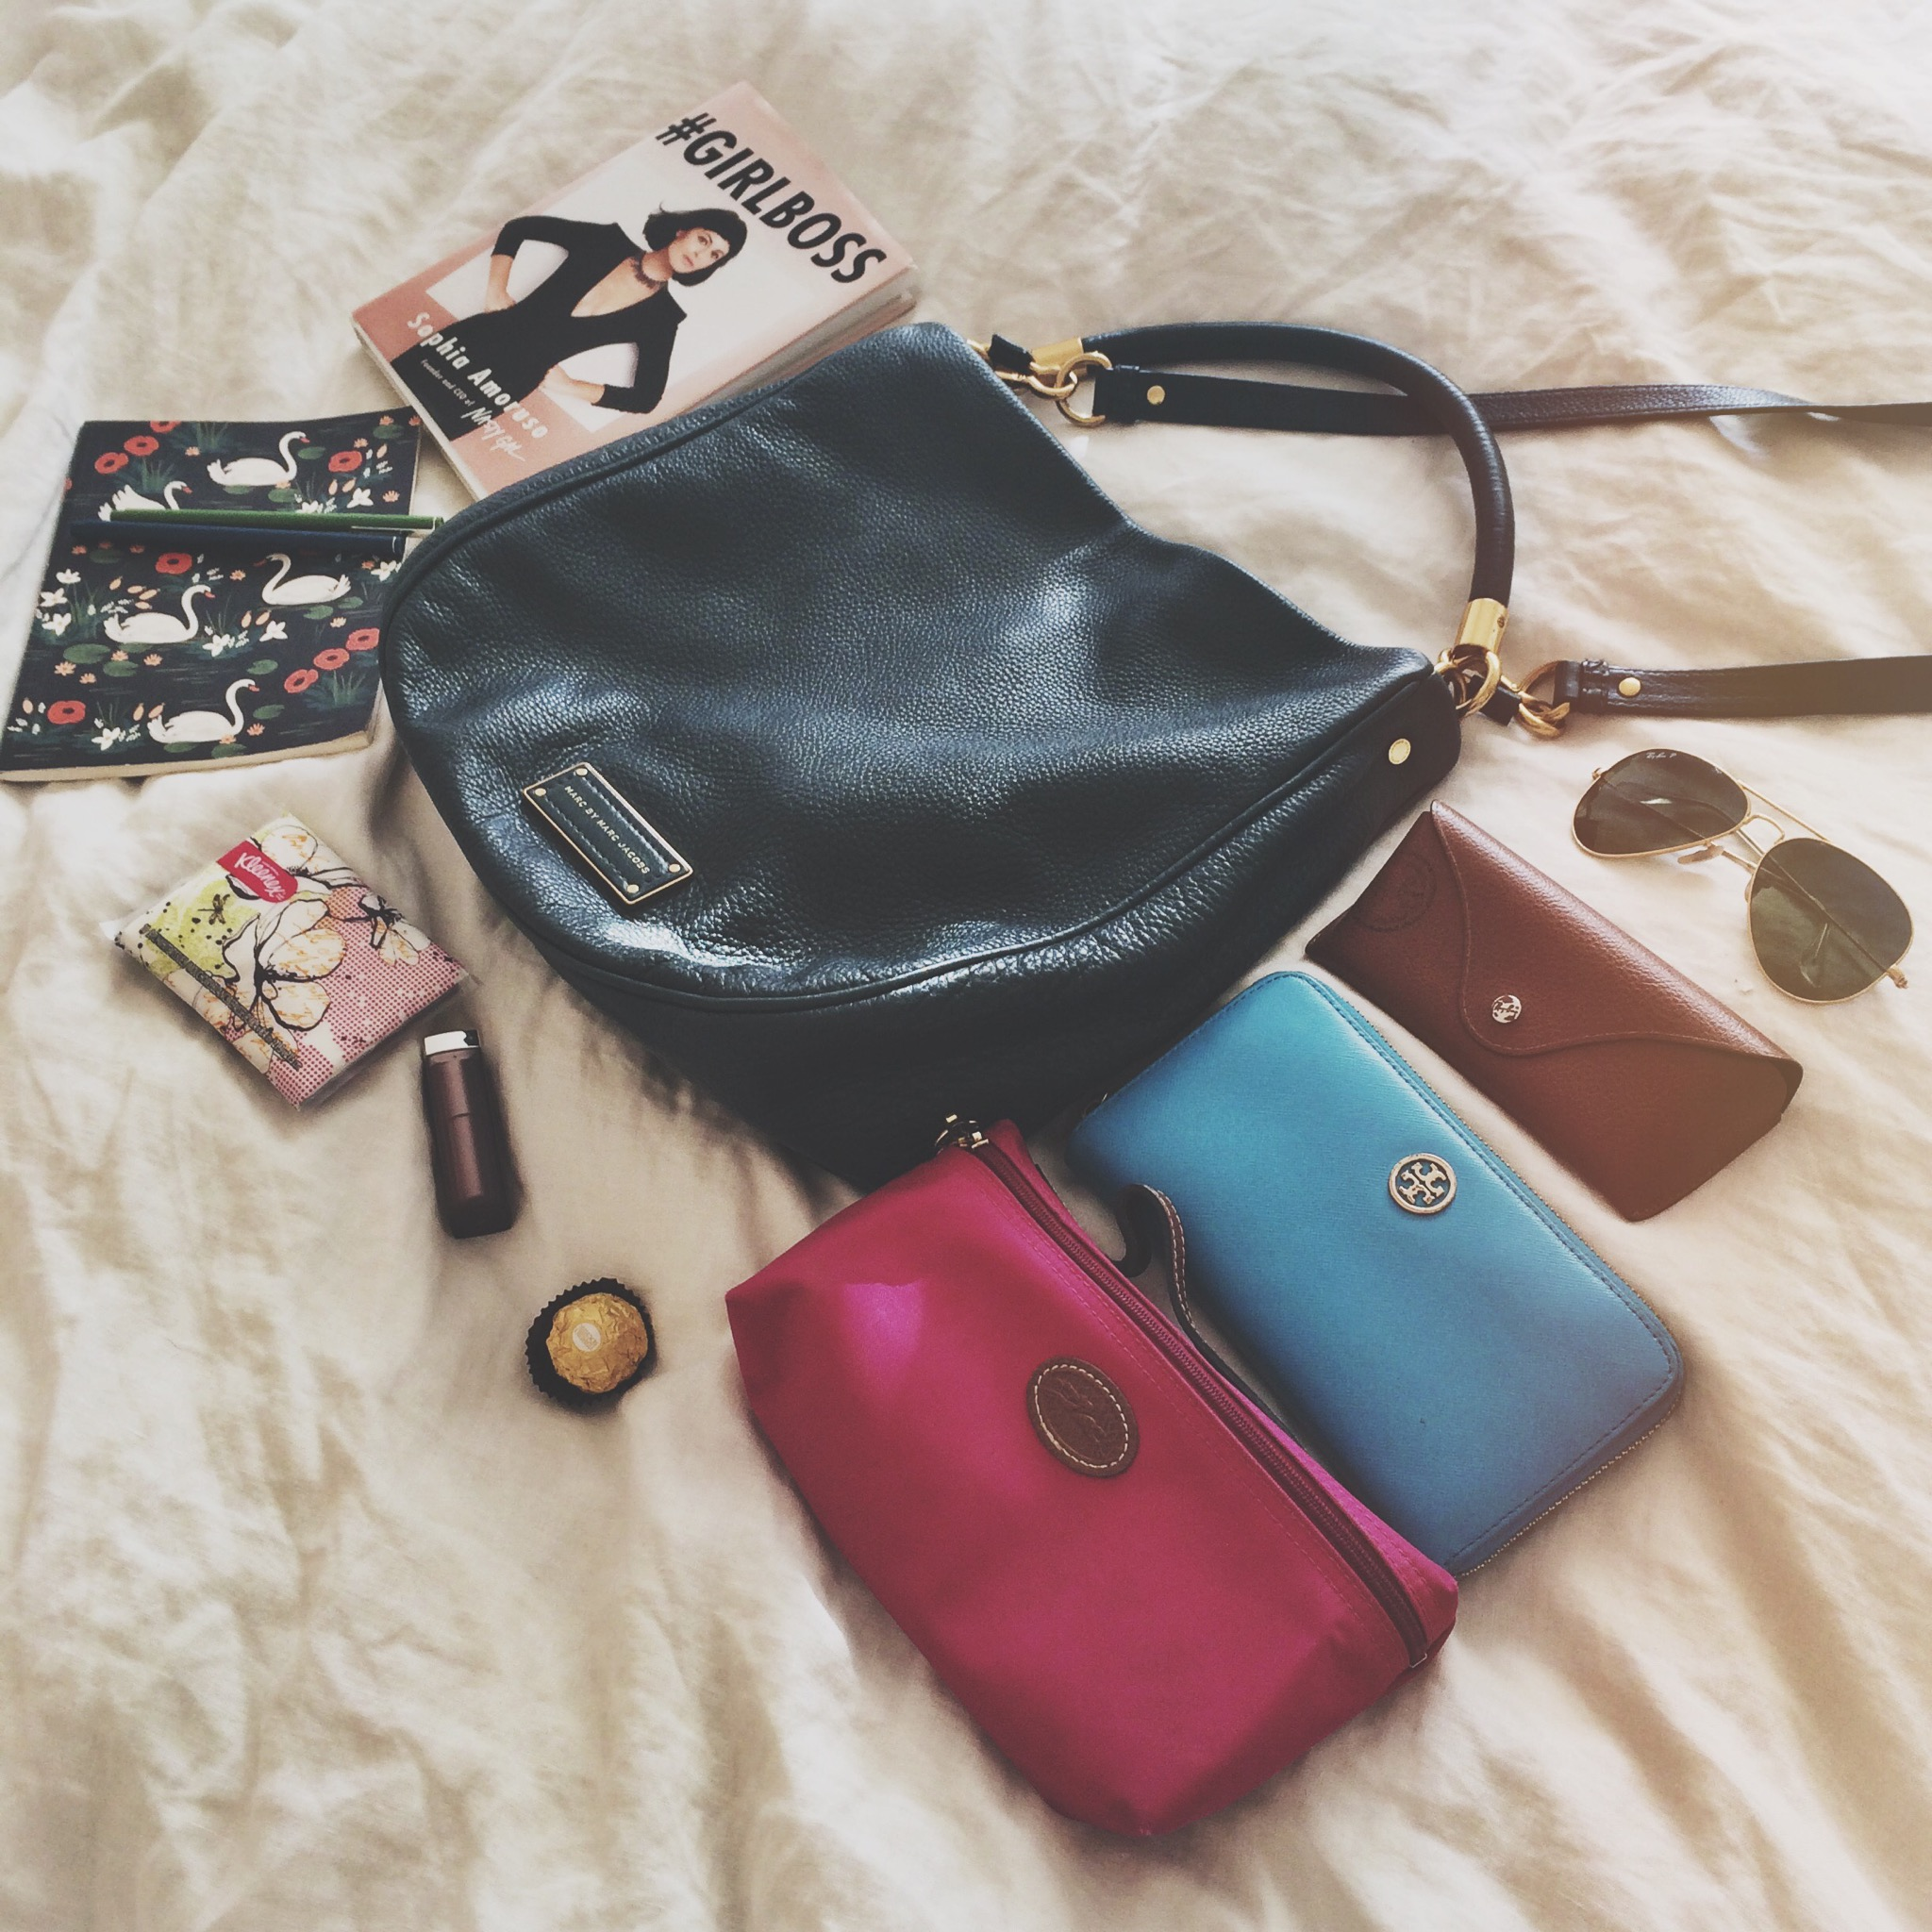 66a7b716484d This bag is hands down my favorite bag I own. It s the perfect size and fits  everything I need on a normal day. From makeup bags and books